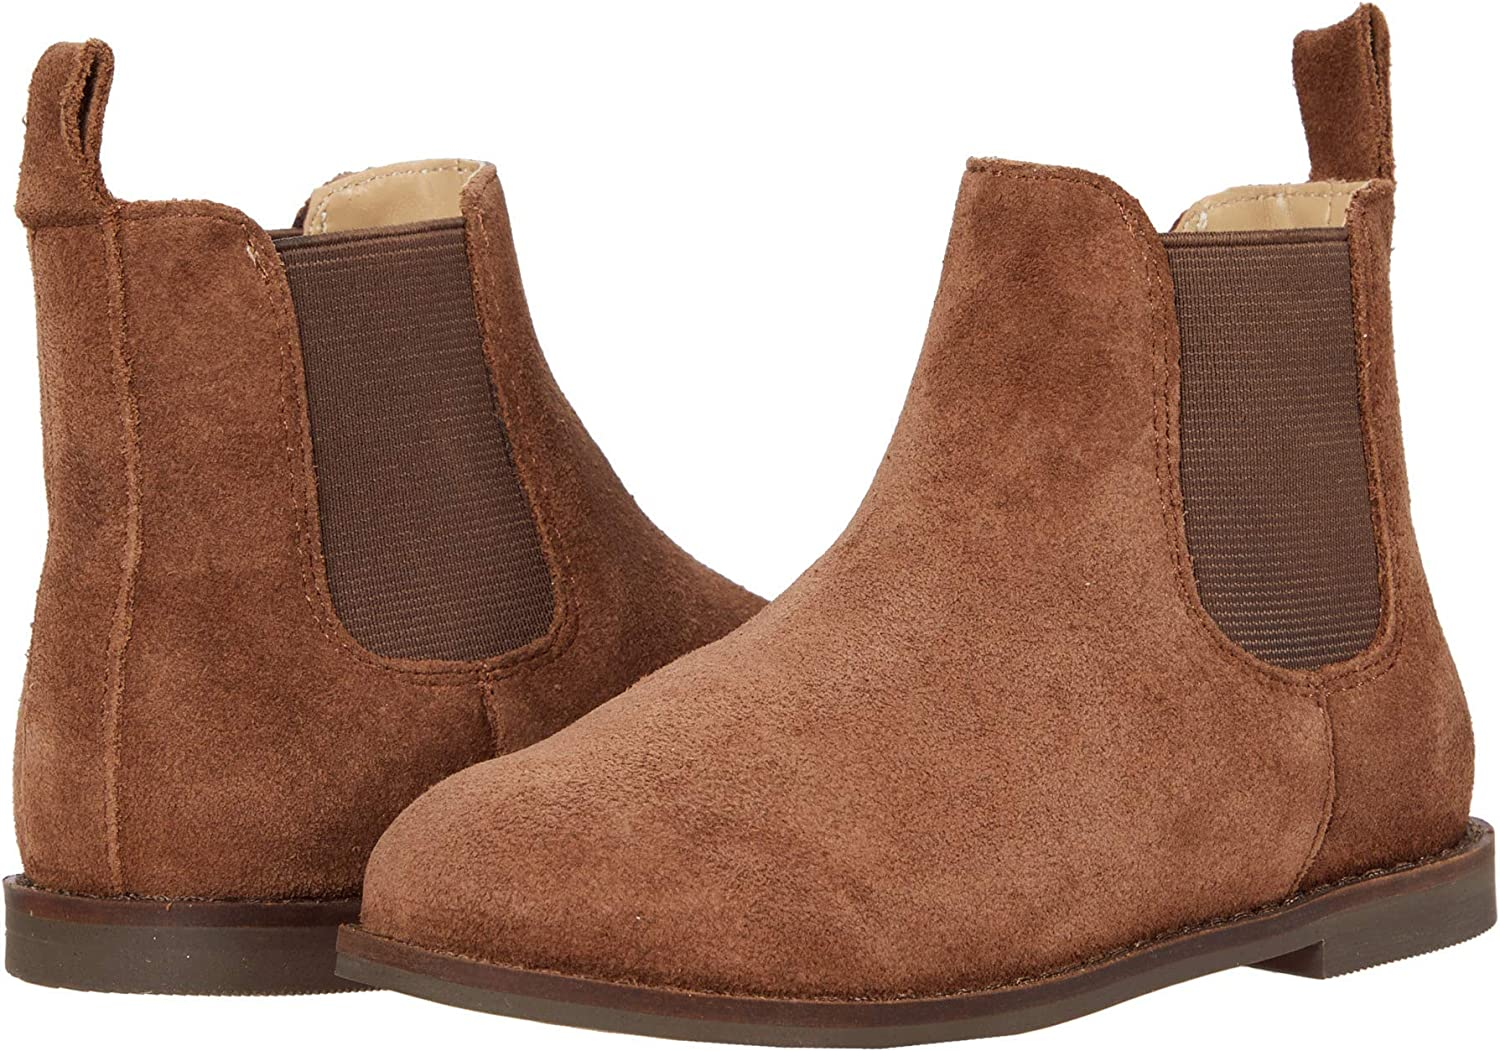 Janie and Jack Boy's Chelsea Boots